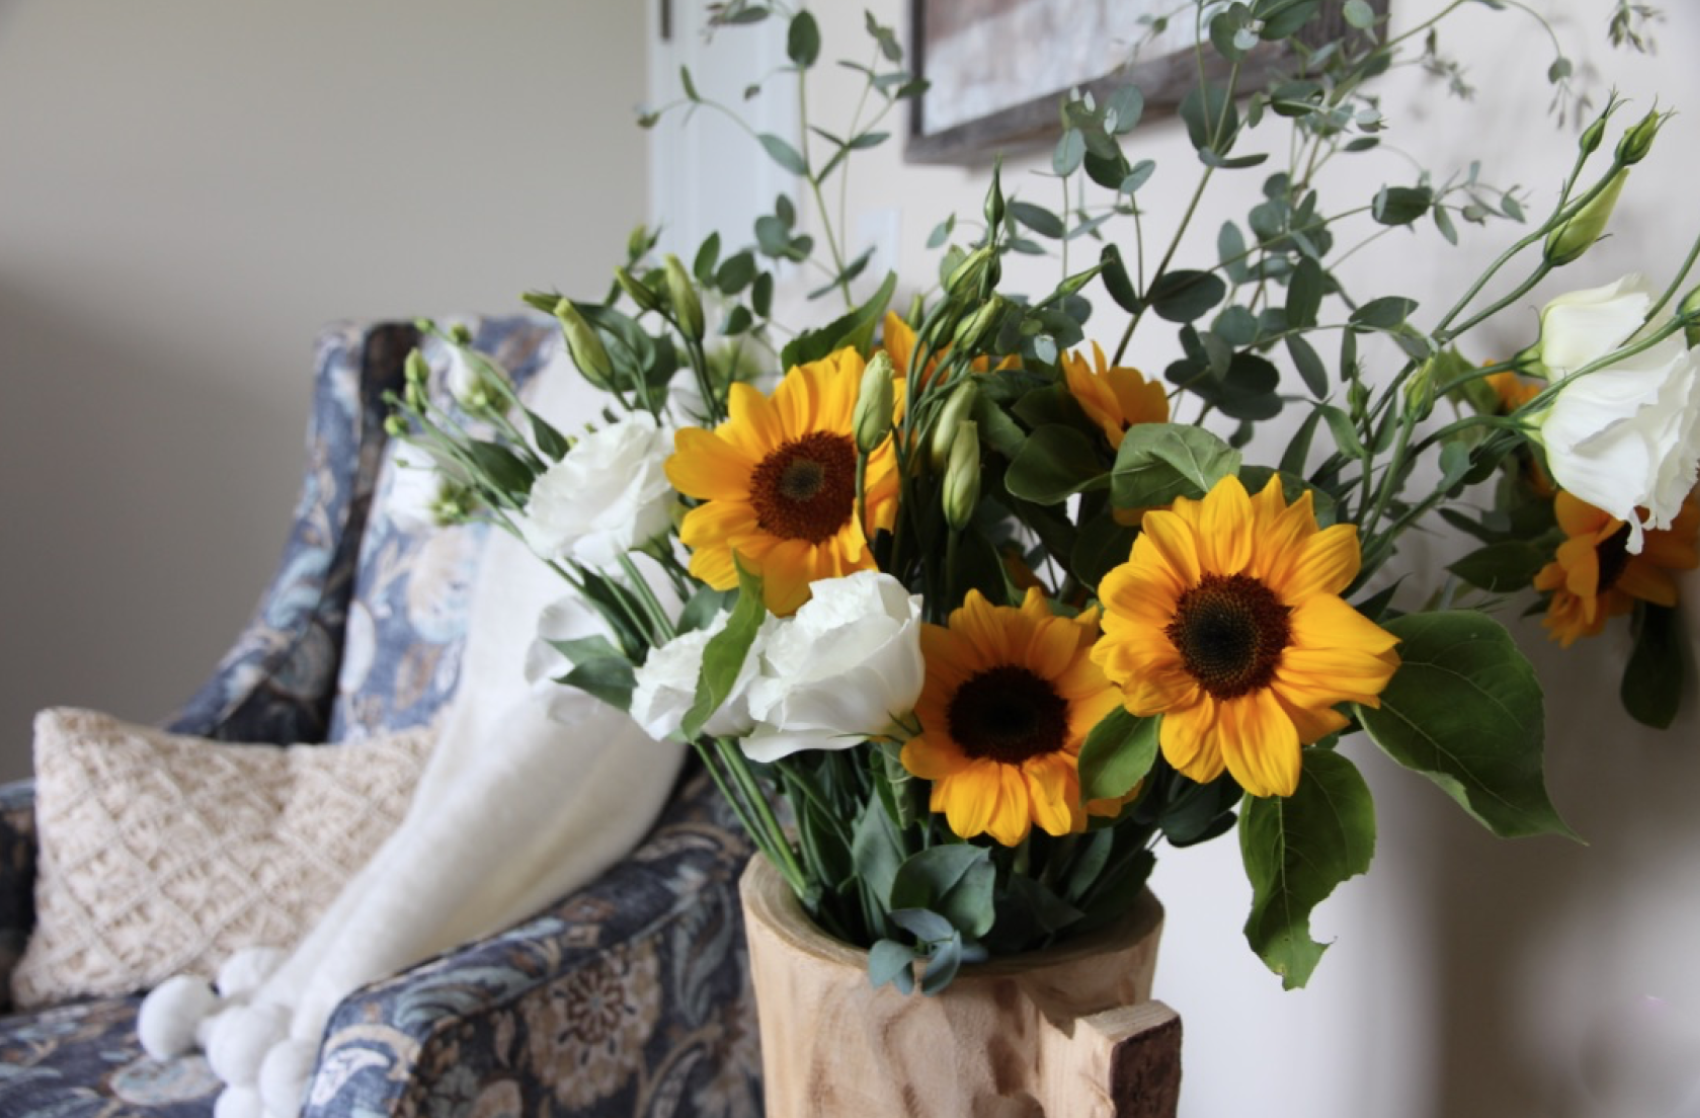 Sunflowers in wood vase